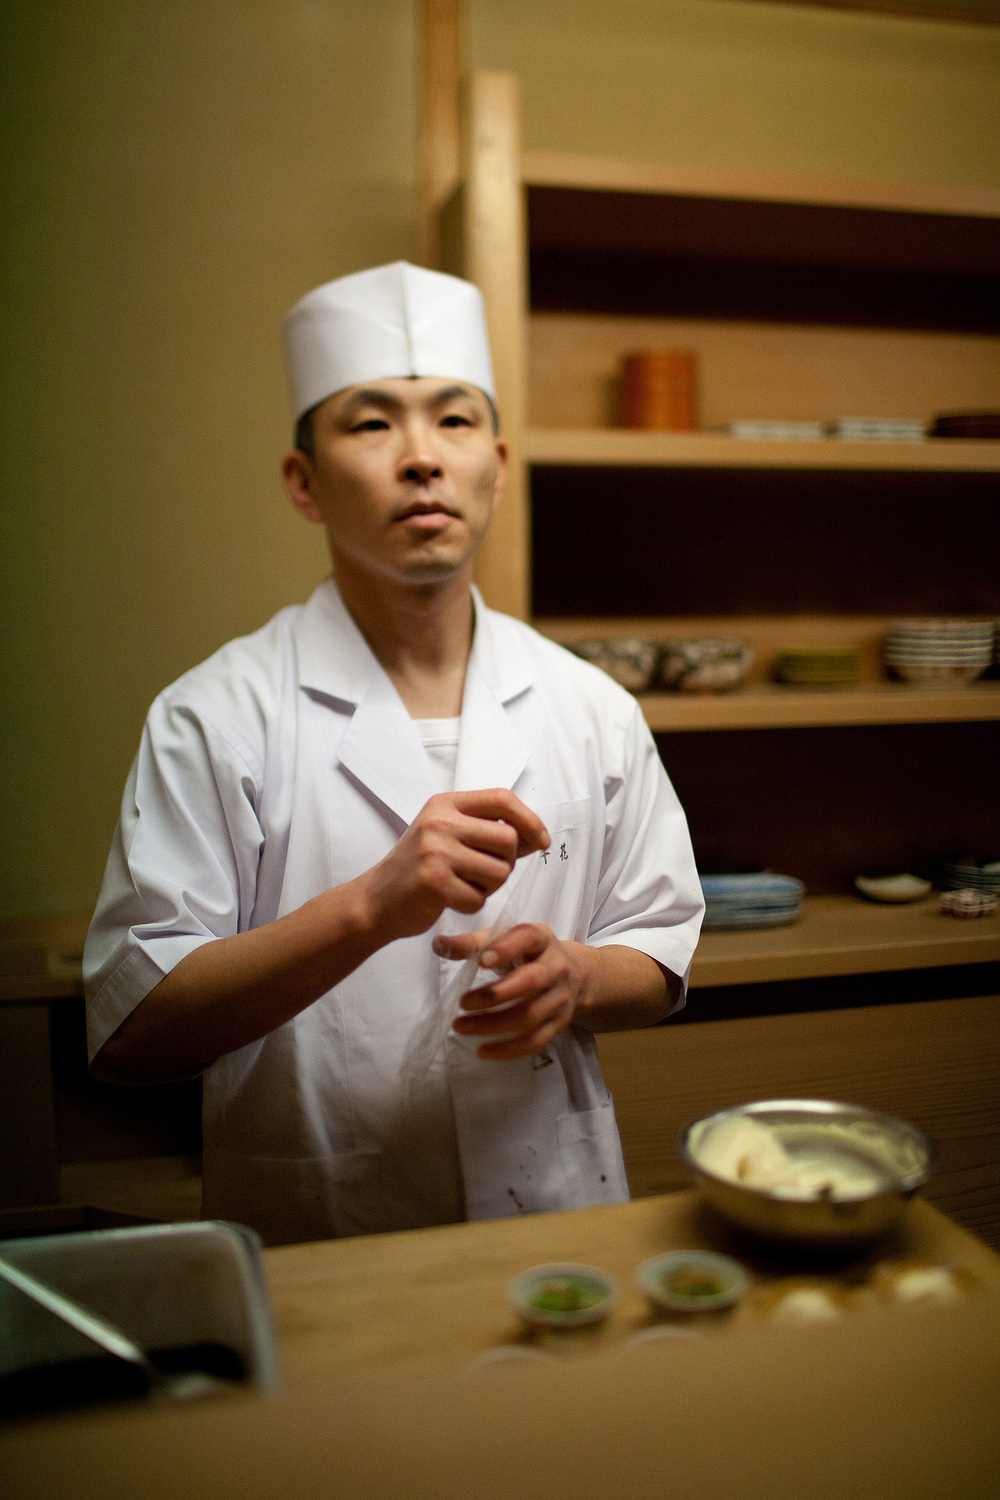 Chihana, Kyoto, Japan - Assistant Chef